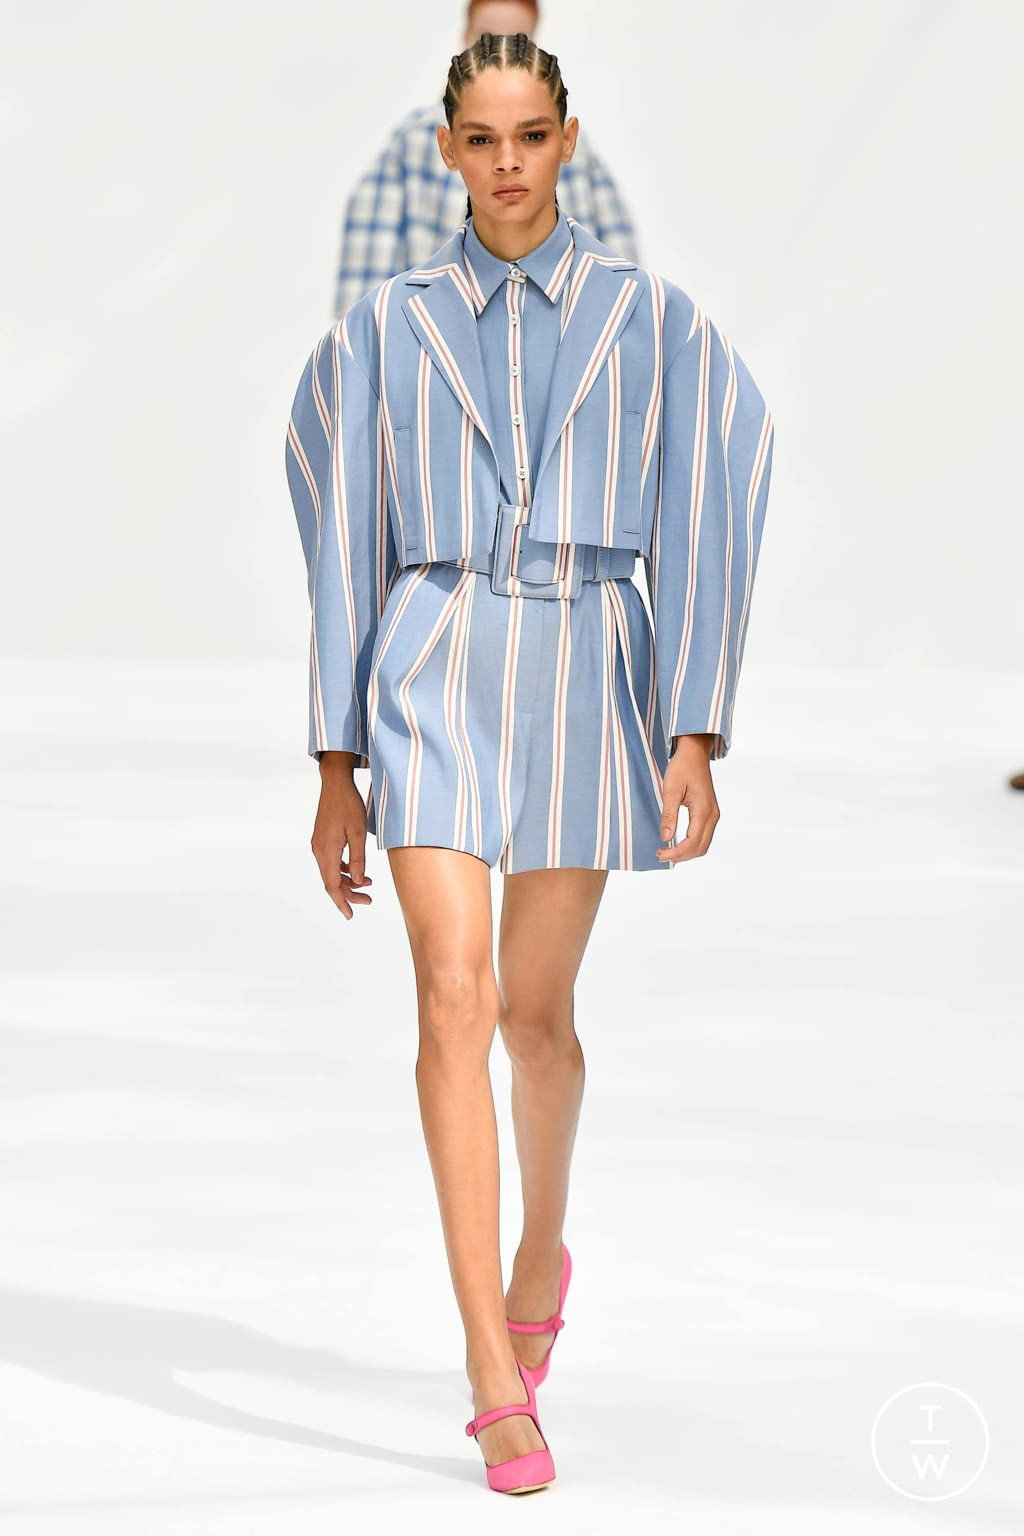 Fashion Week New York Spring/Summer 2020 look 16 from the Carolina Herrera collection 女装